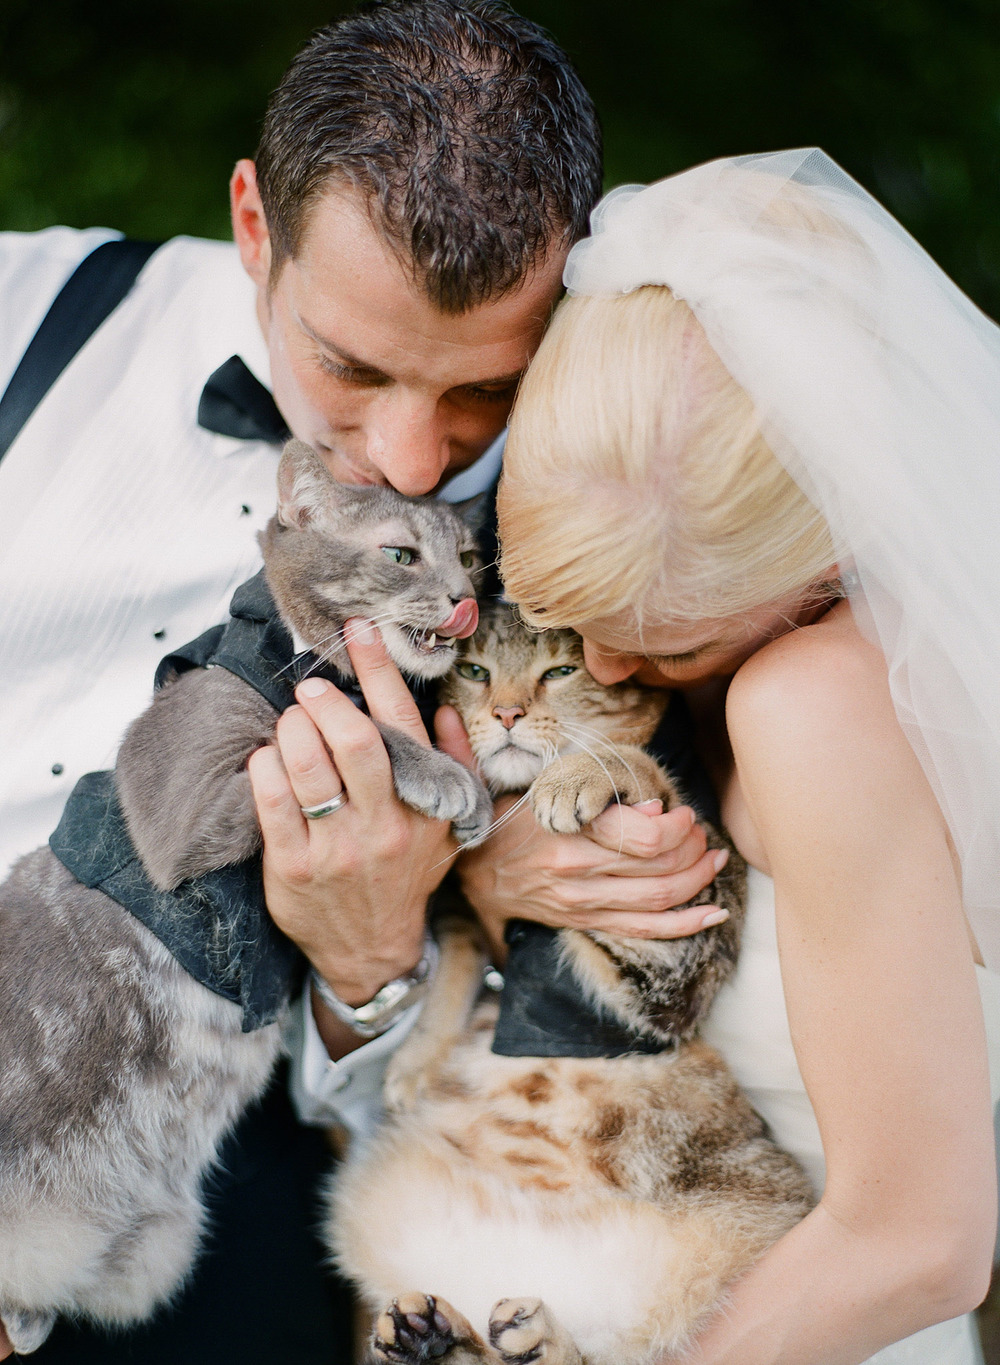 destination wedding photographer, Lexia Frank, photographs this bride and groom with their cats who wore tuxedos to the wedding at the italian destination wedding venue The Villa Terrace